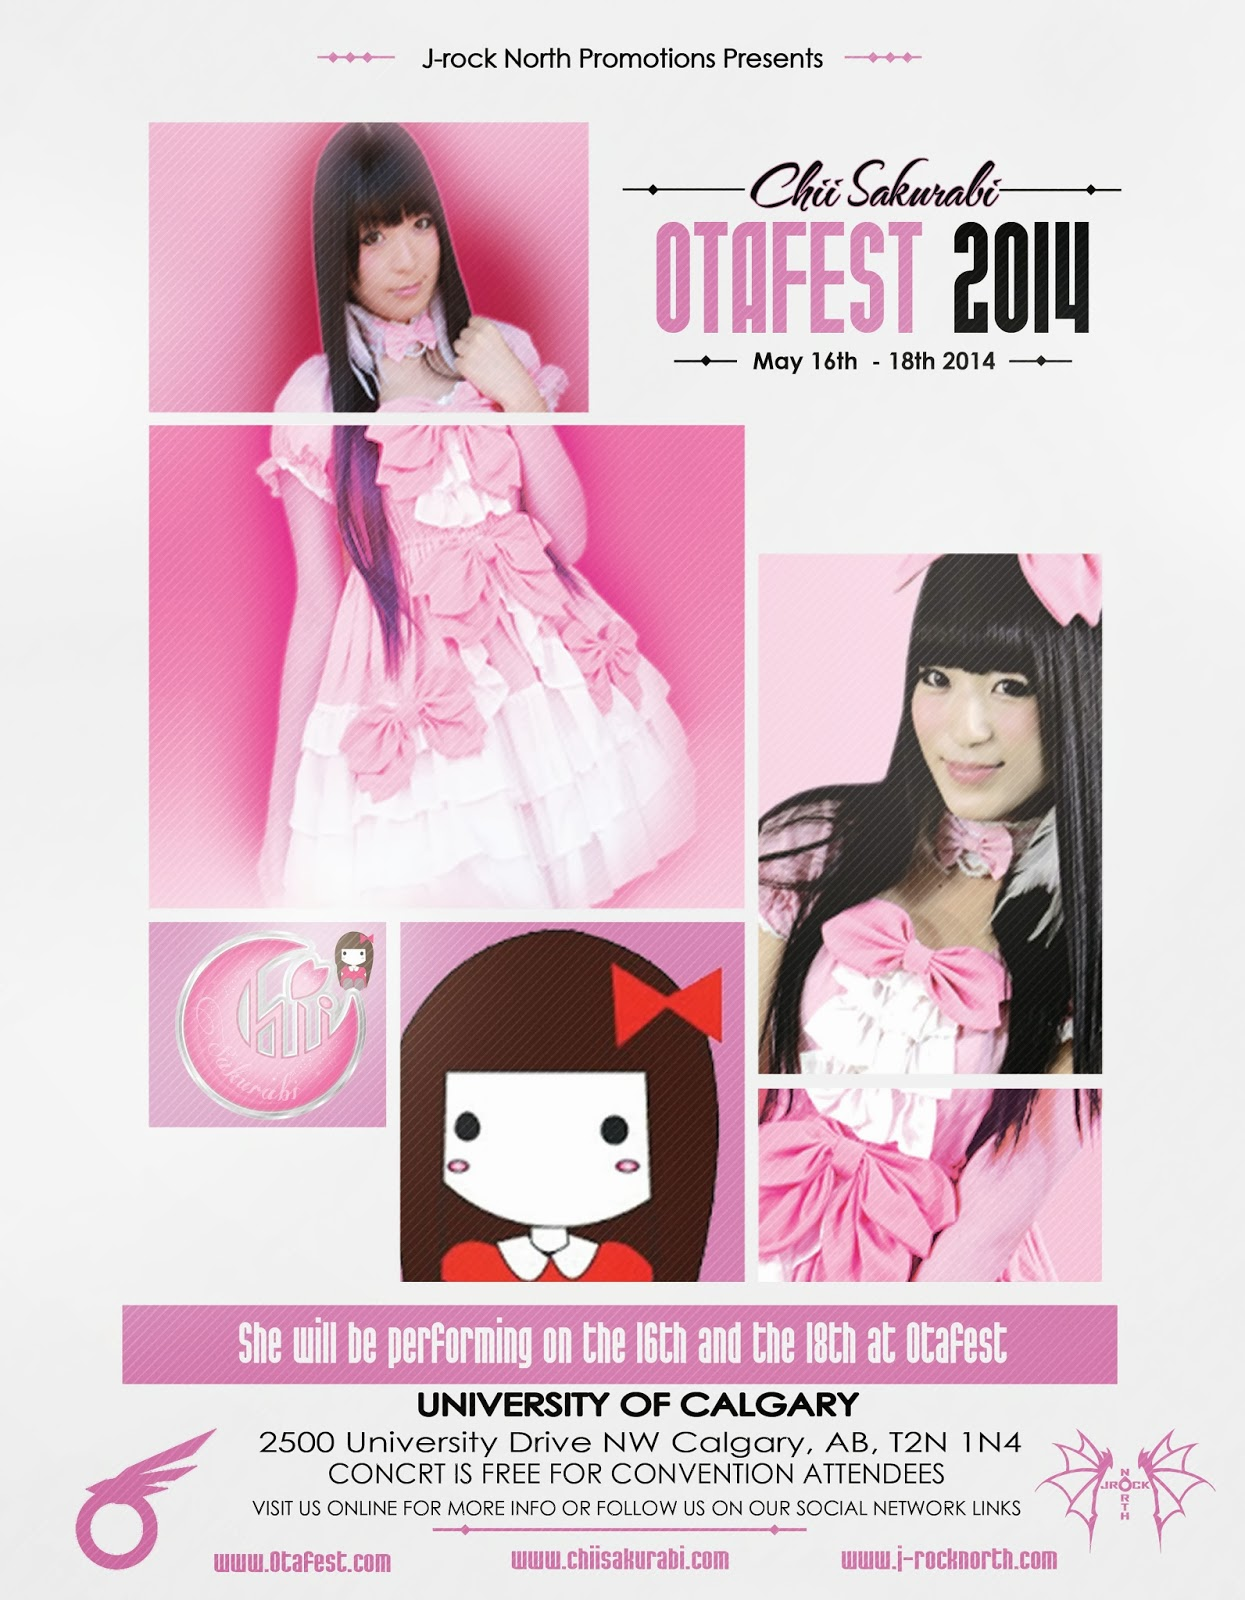 J-rock North Promotions Inc. Presents: Chii Sakurabi At Otafest 2014